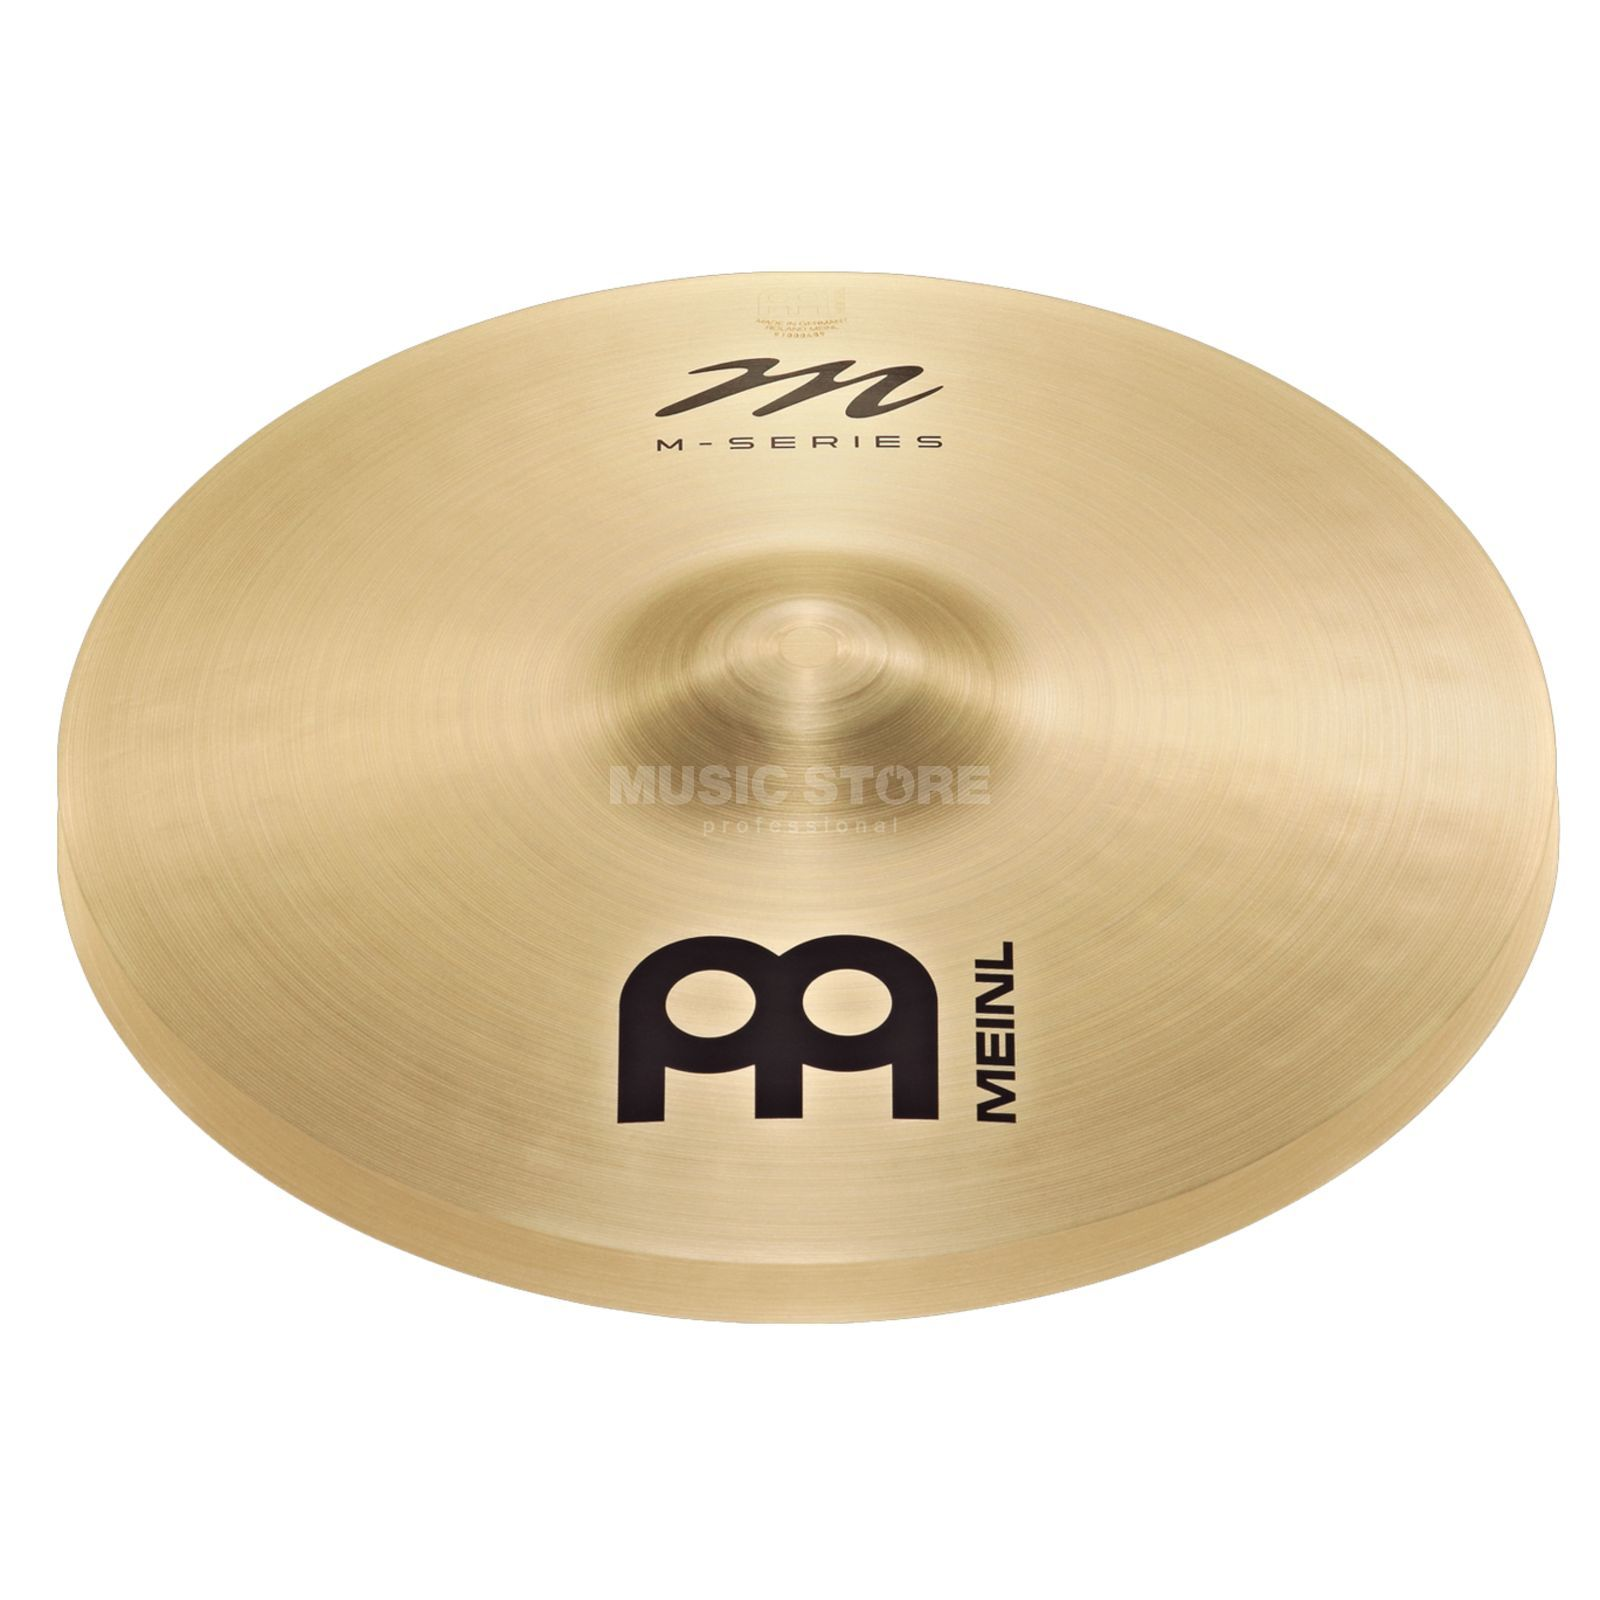 "Meinl MSeries Medium HiHat 13"", MS13MH, B-Stock Produktbild"